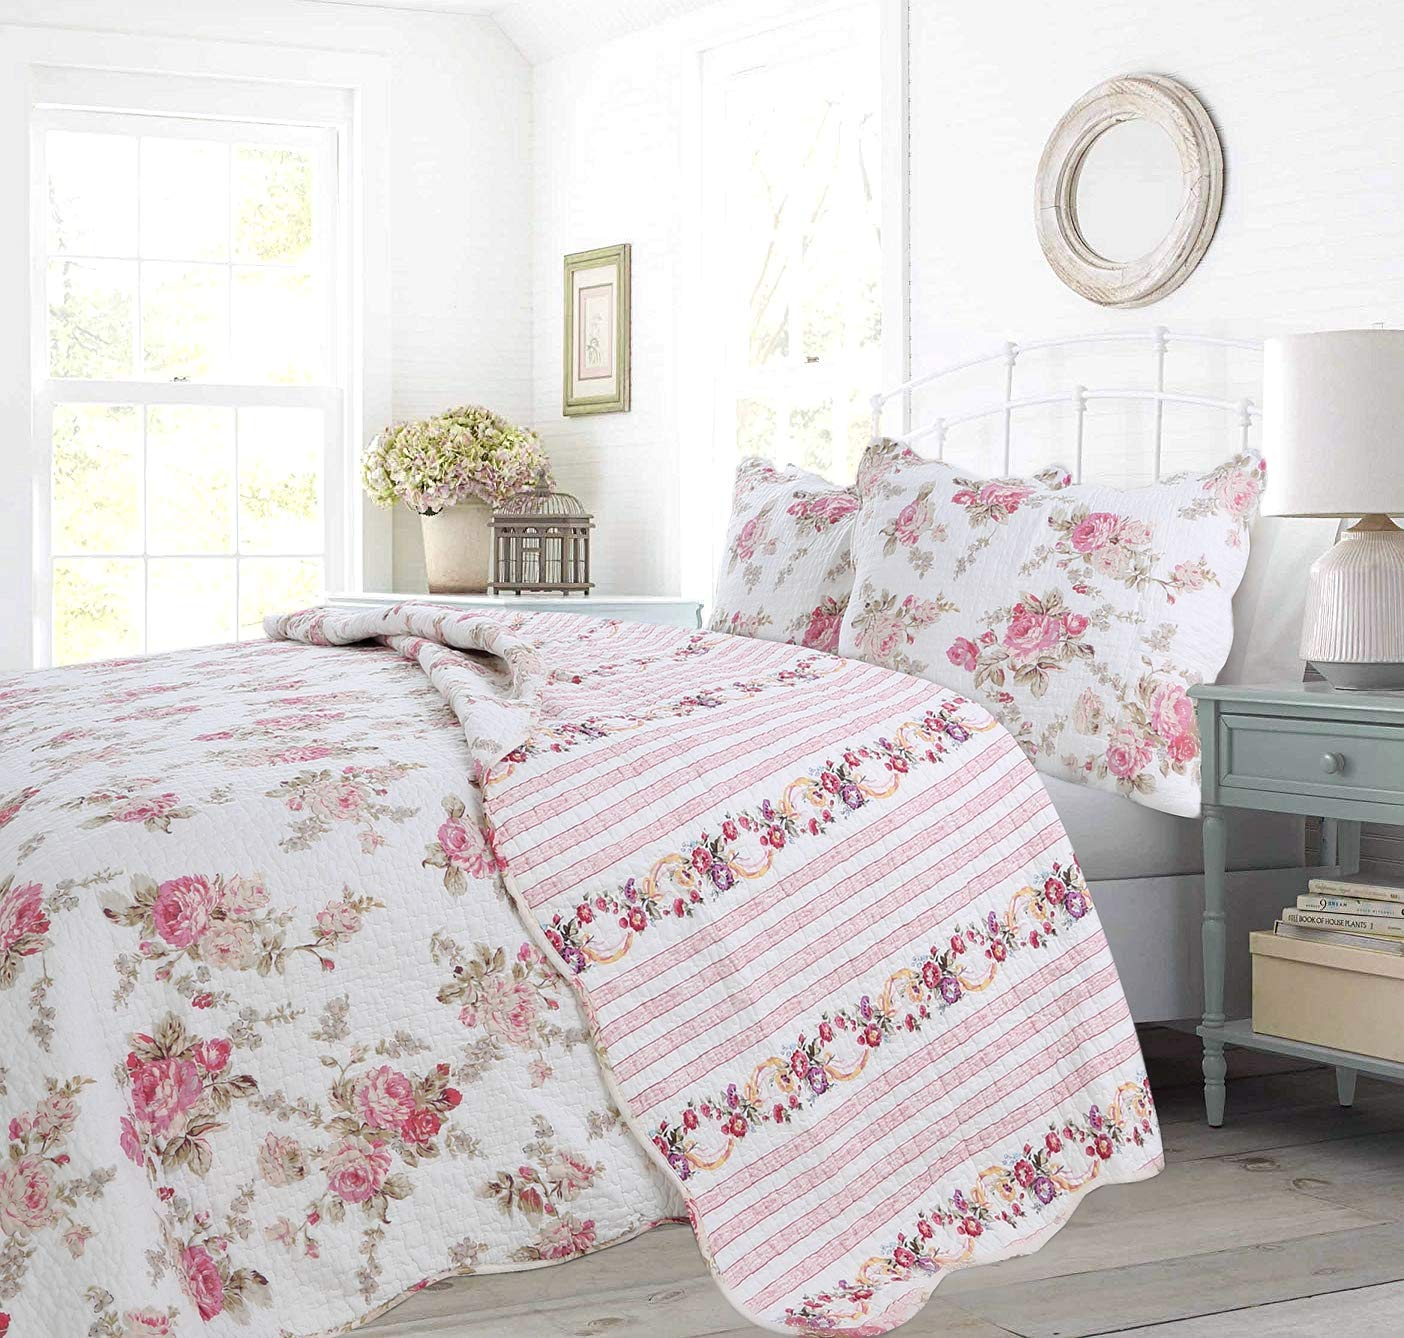 Cozy Line Home Fashions Floral Peony Quilt Bedding Set, Shabby Chic Pink Ivory Flower Printed 100% Cotton Reversible Coverlet Bedspread Romantic Gifts for Women Girl (Pink,Queen - 3 Piece)